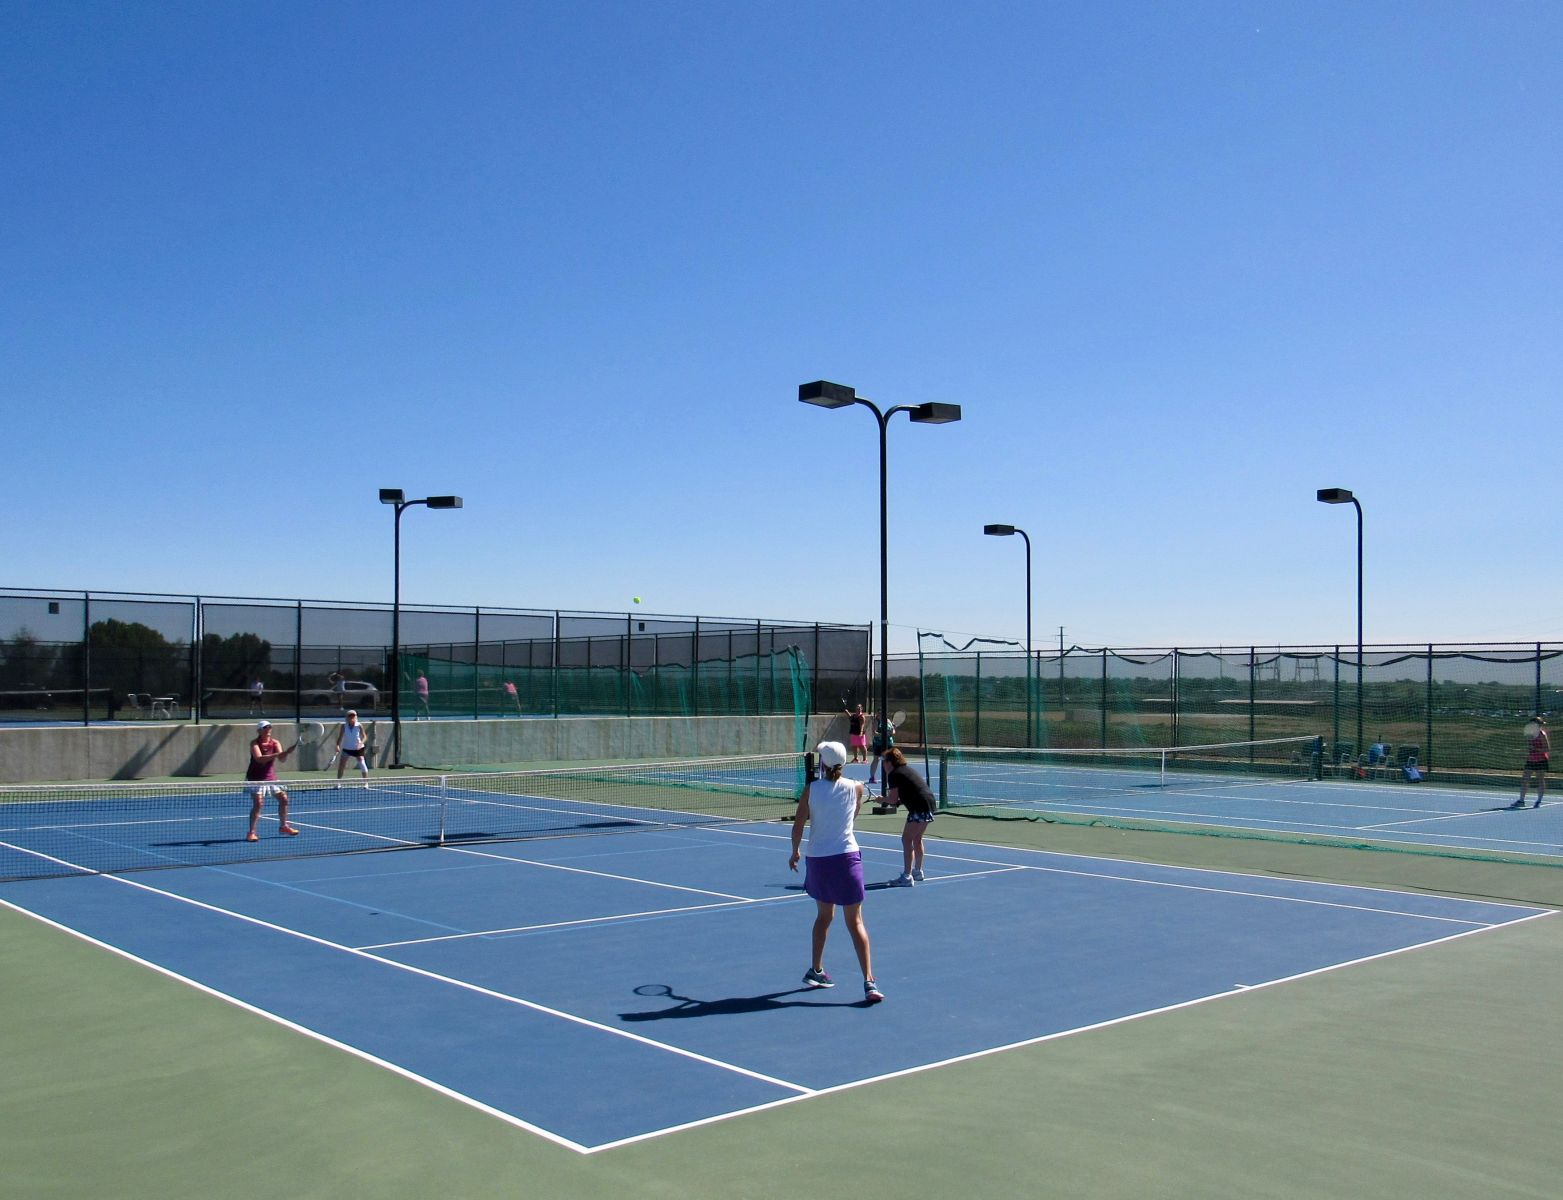 The tennis courts at The Fox Hill Club